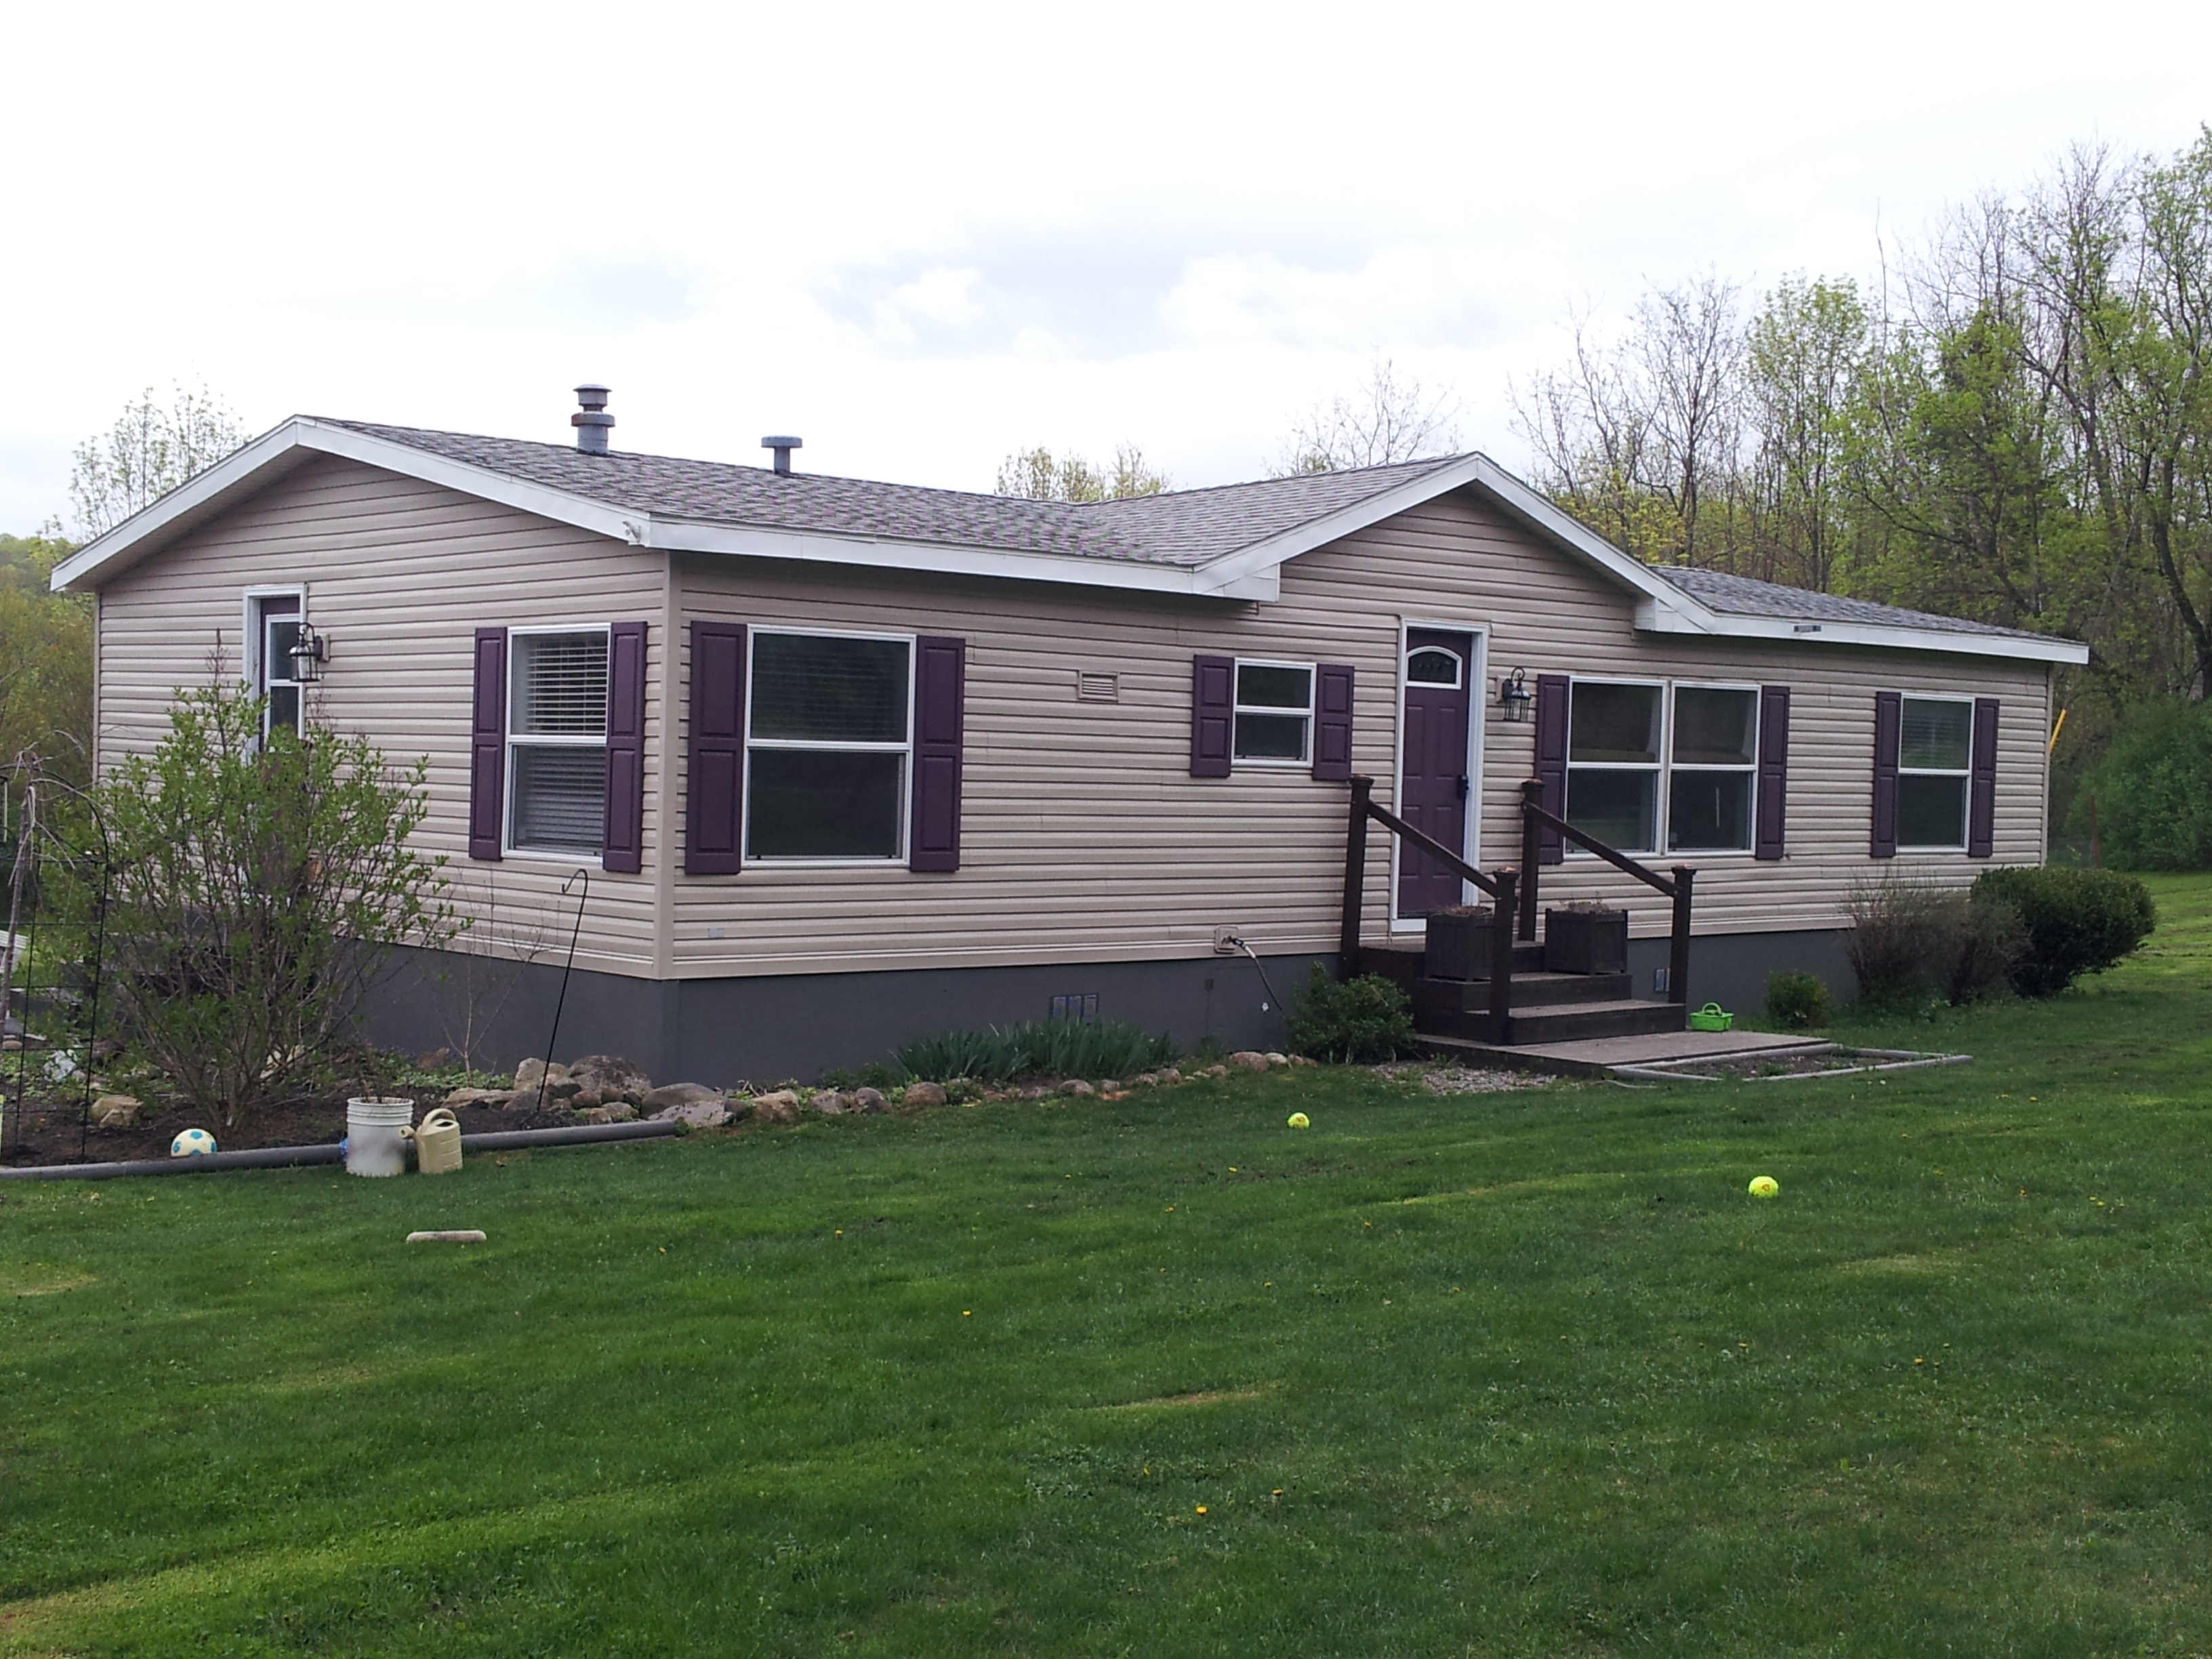 Can i paint my mobile home yes i can my mobile home - Preview exterior house paint colors ...